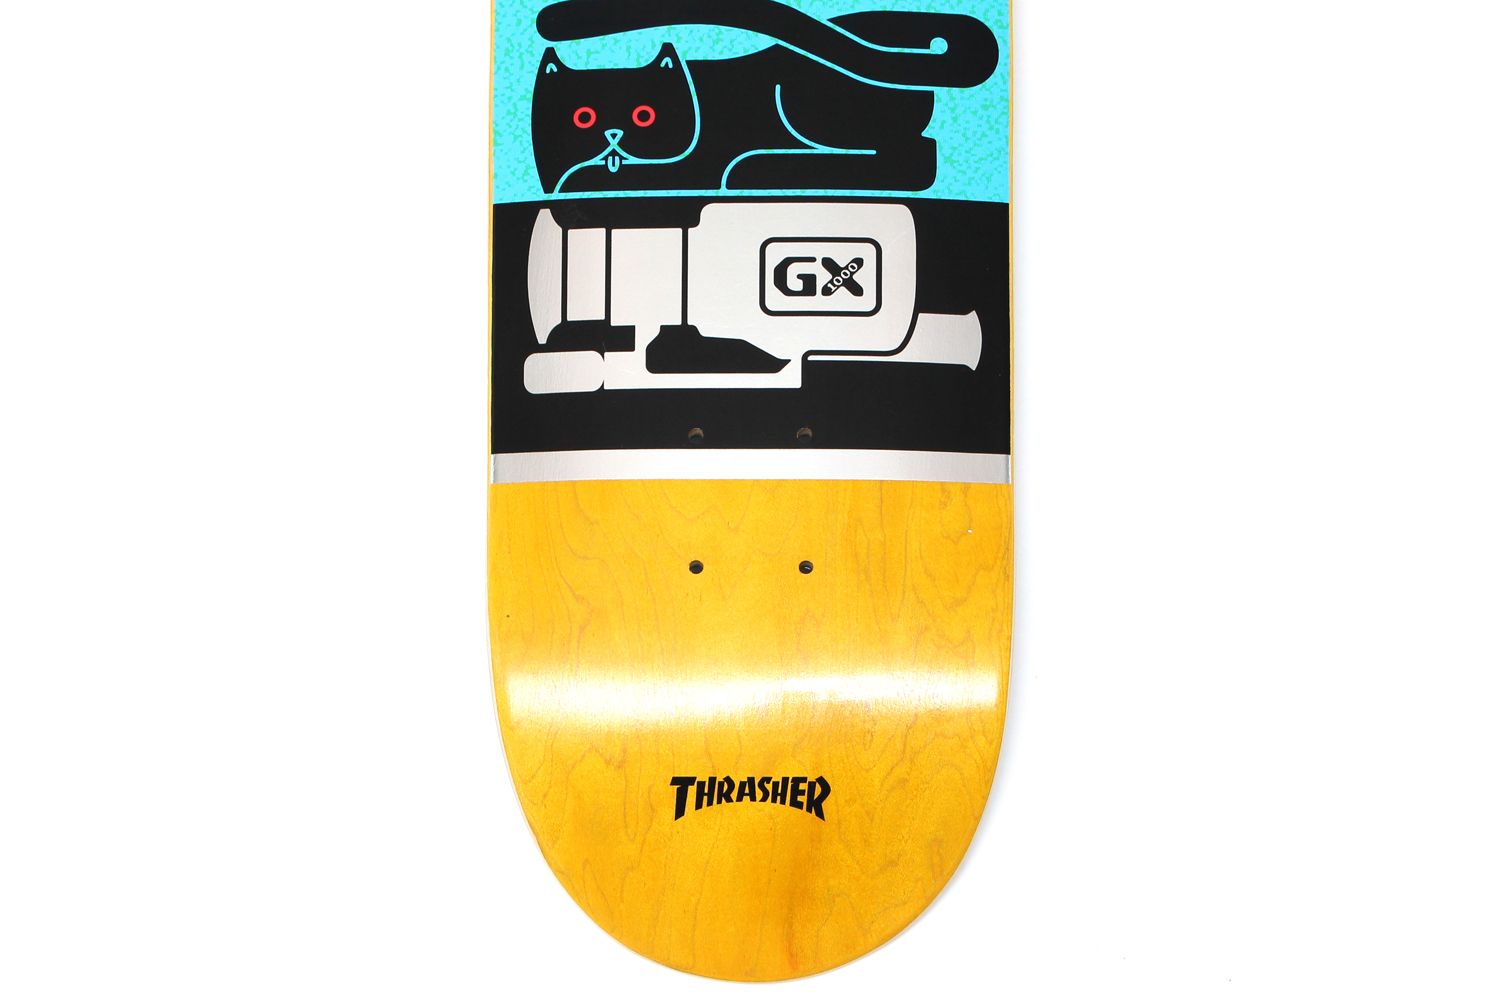 habitat-gx1000-thrasher-collab-boards03